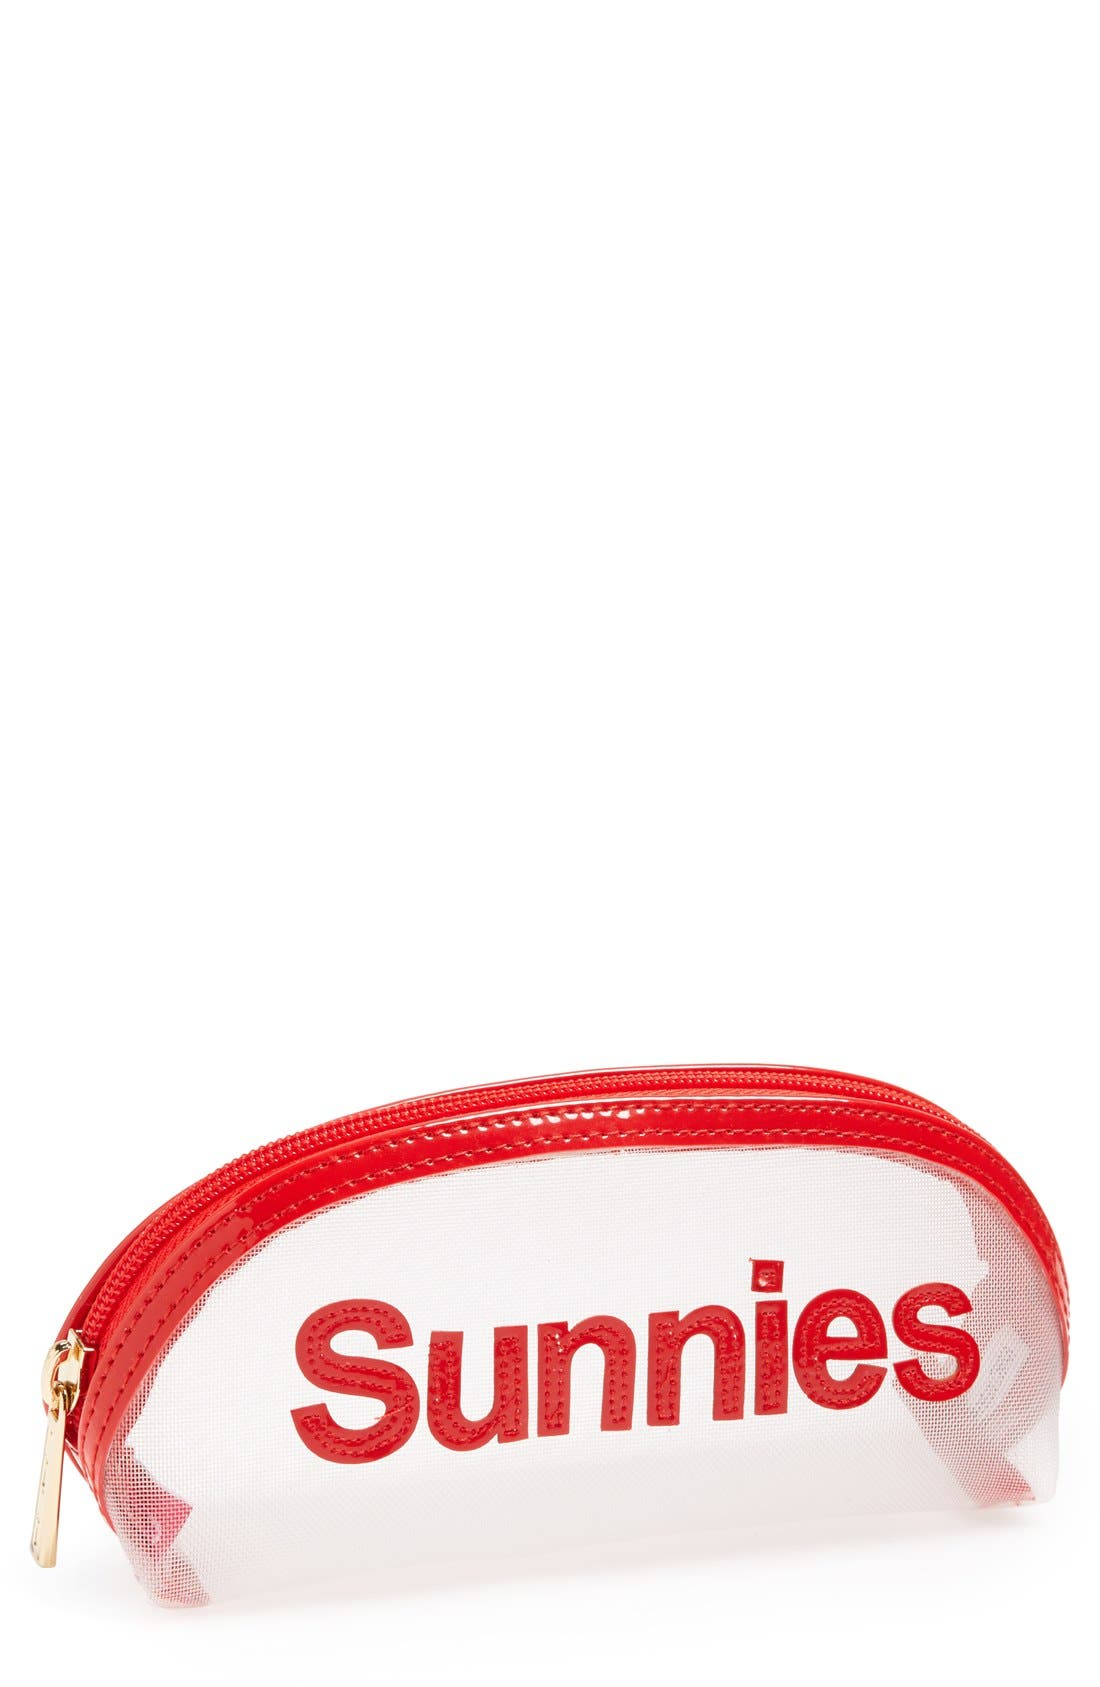 Mesh Sunglasses Pouch,                         Main,                         color, White/ Red